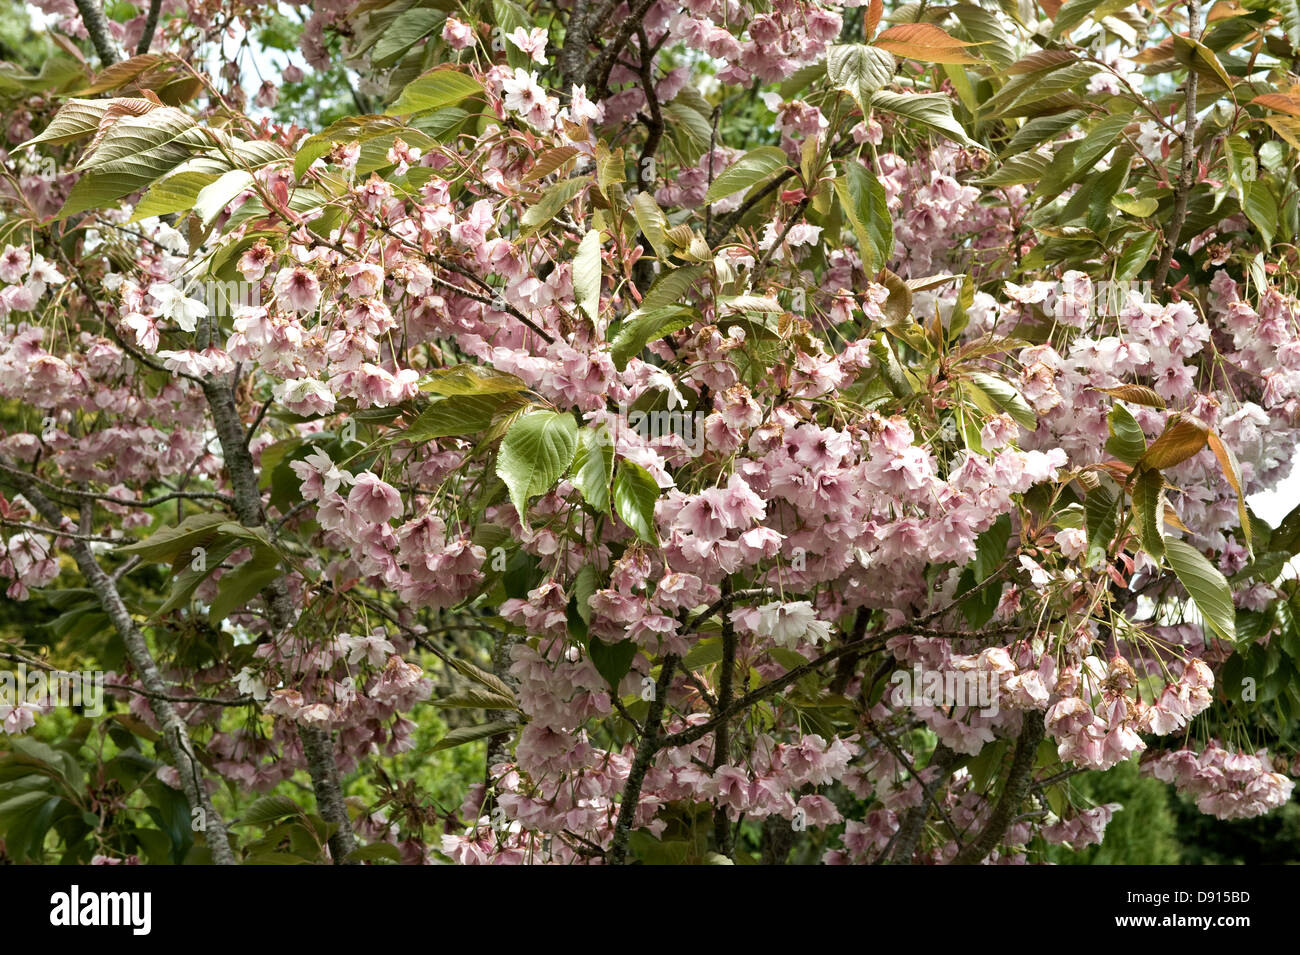 Flowers On An Ornamental Flowering Cherry Tree Prunus Shizuka Or